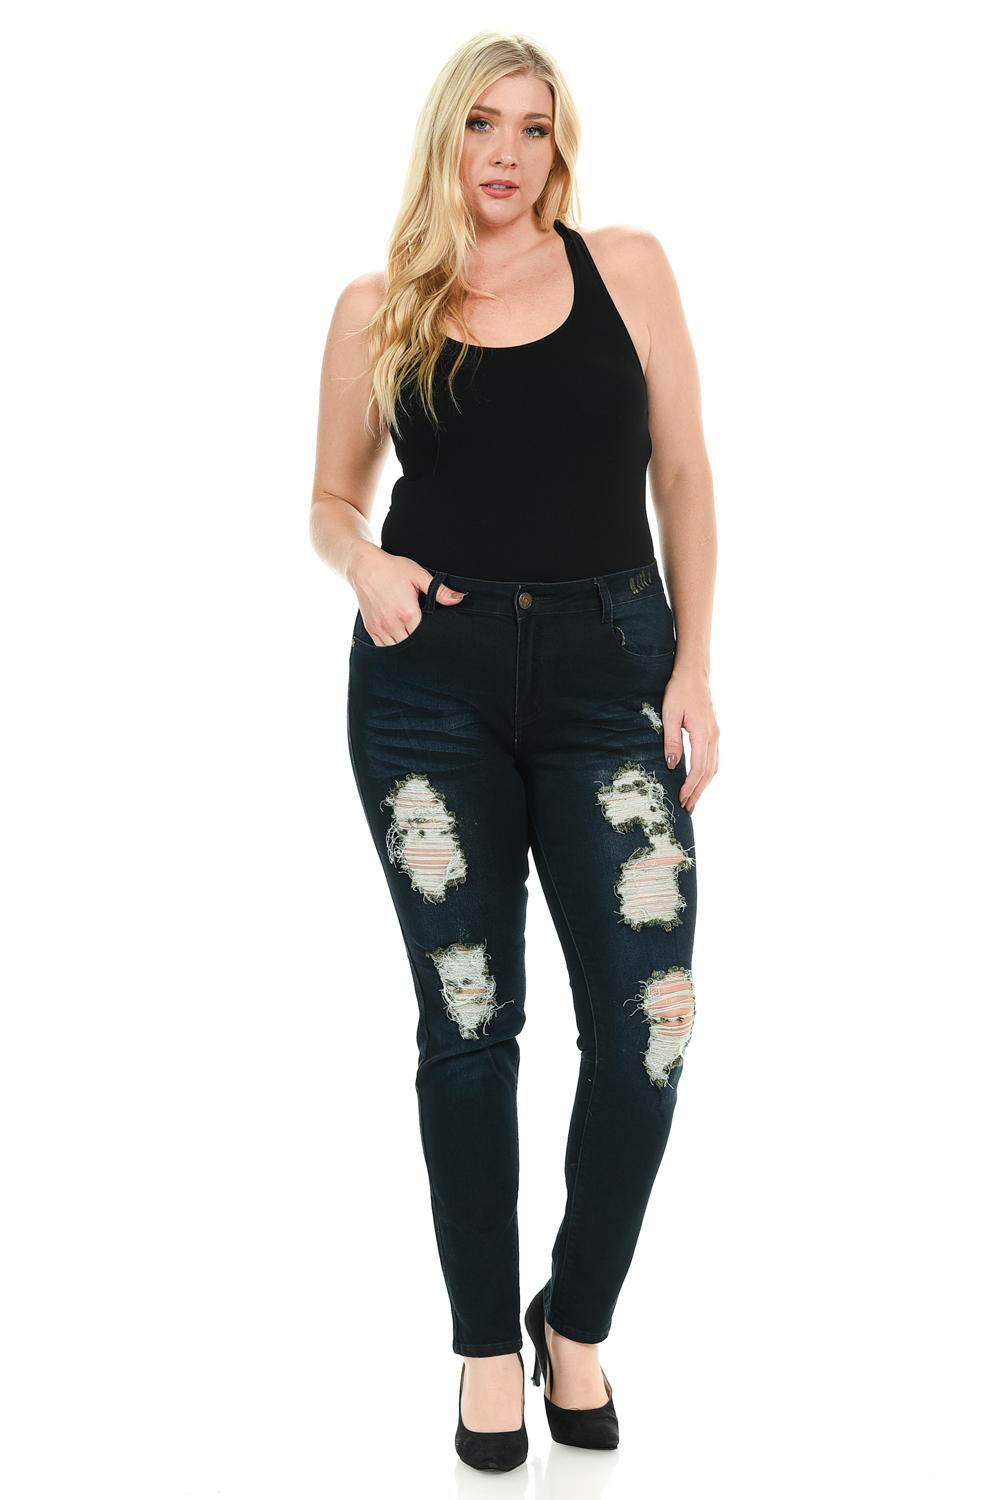 Sweet Look Premium Edition Women's Jeans - Plus Size - High Waist - Skinny - Style N304A-R